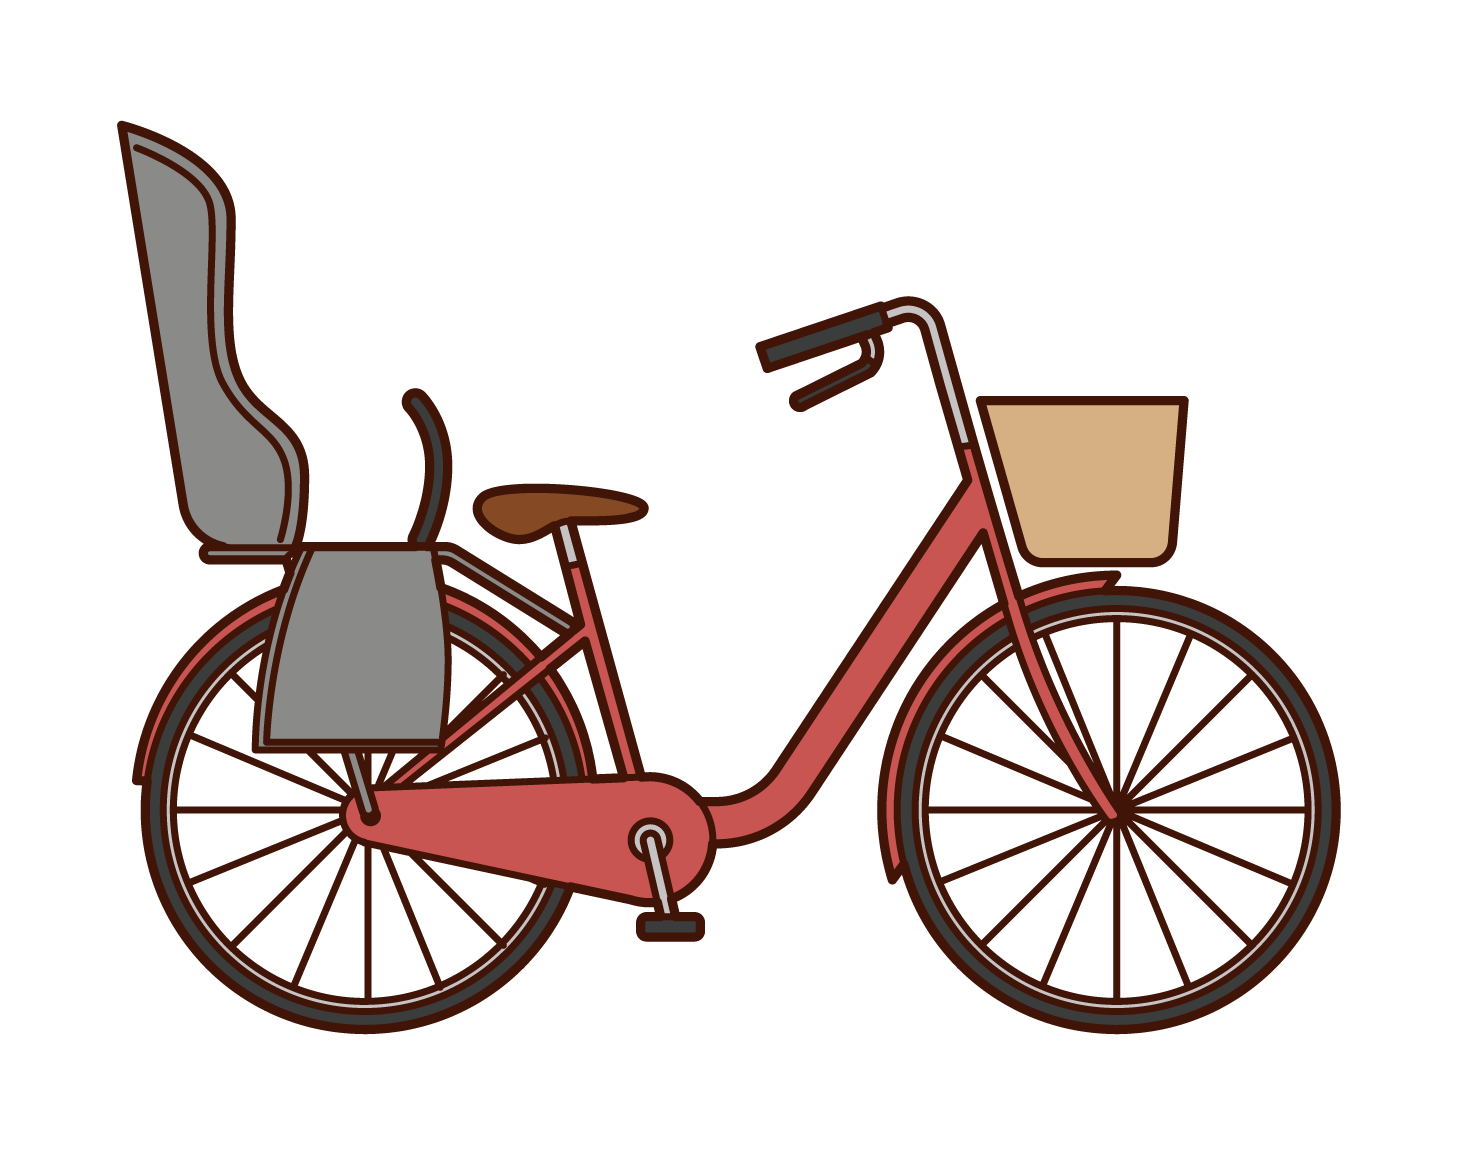 Illustration of a bicycle with a child seat